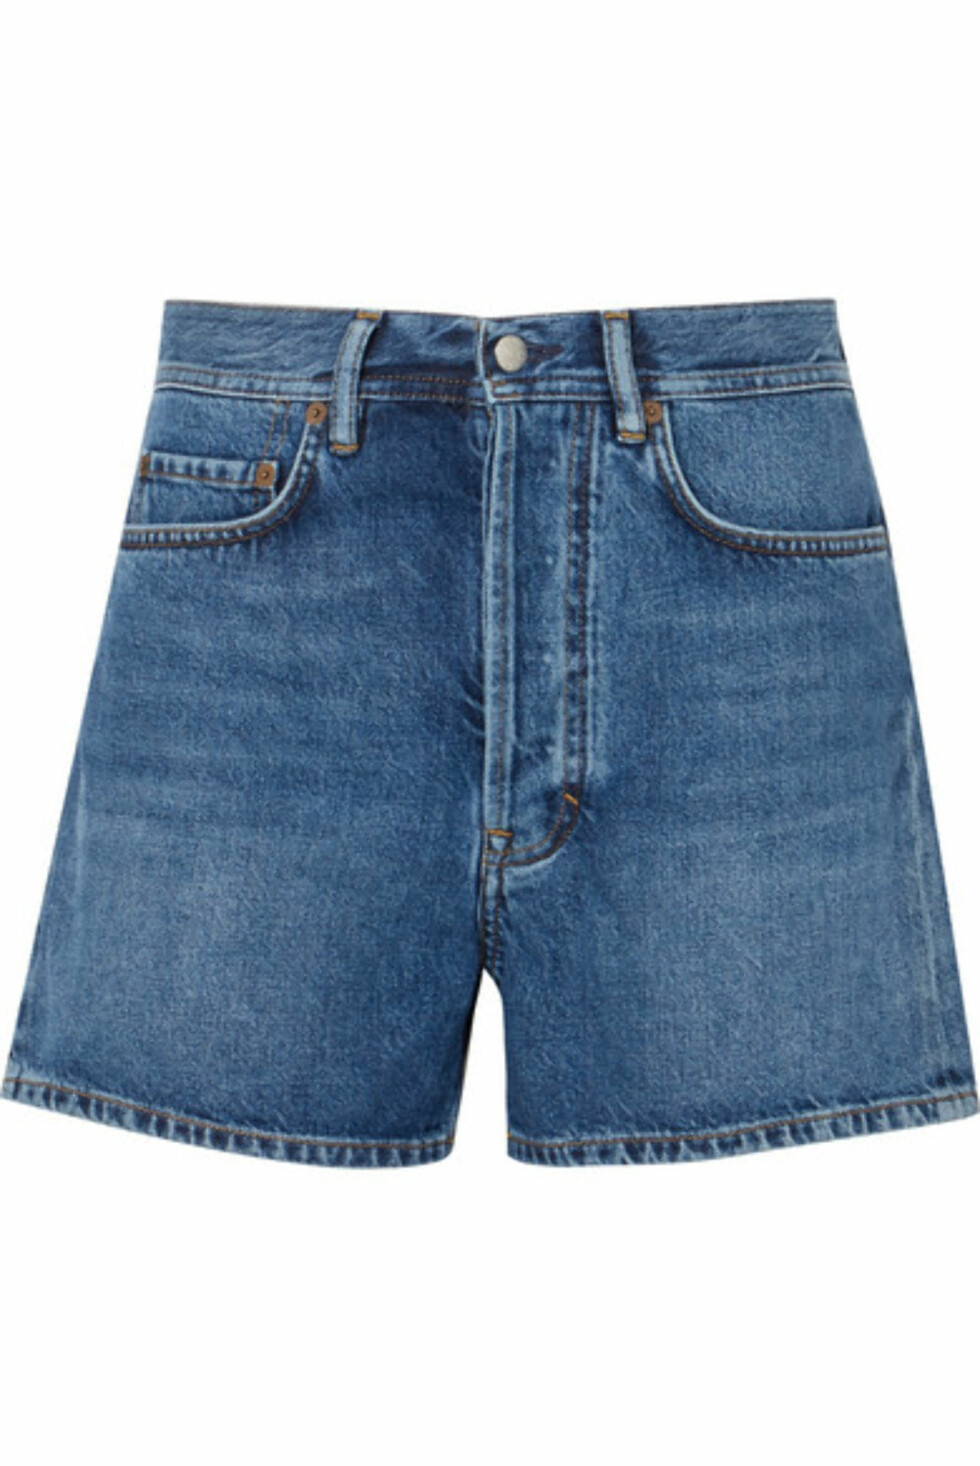 Shorts fra Acne Studios |2055,-| https://www.net-a-porter.com/no/en/product/1003869/Acne_Studios/swamp-denim-shorts